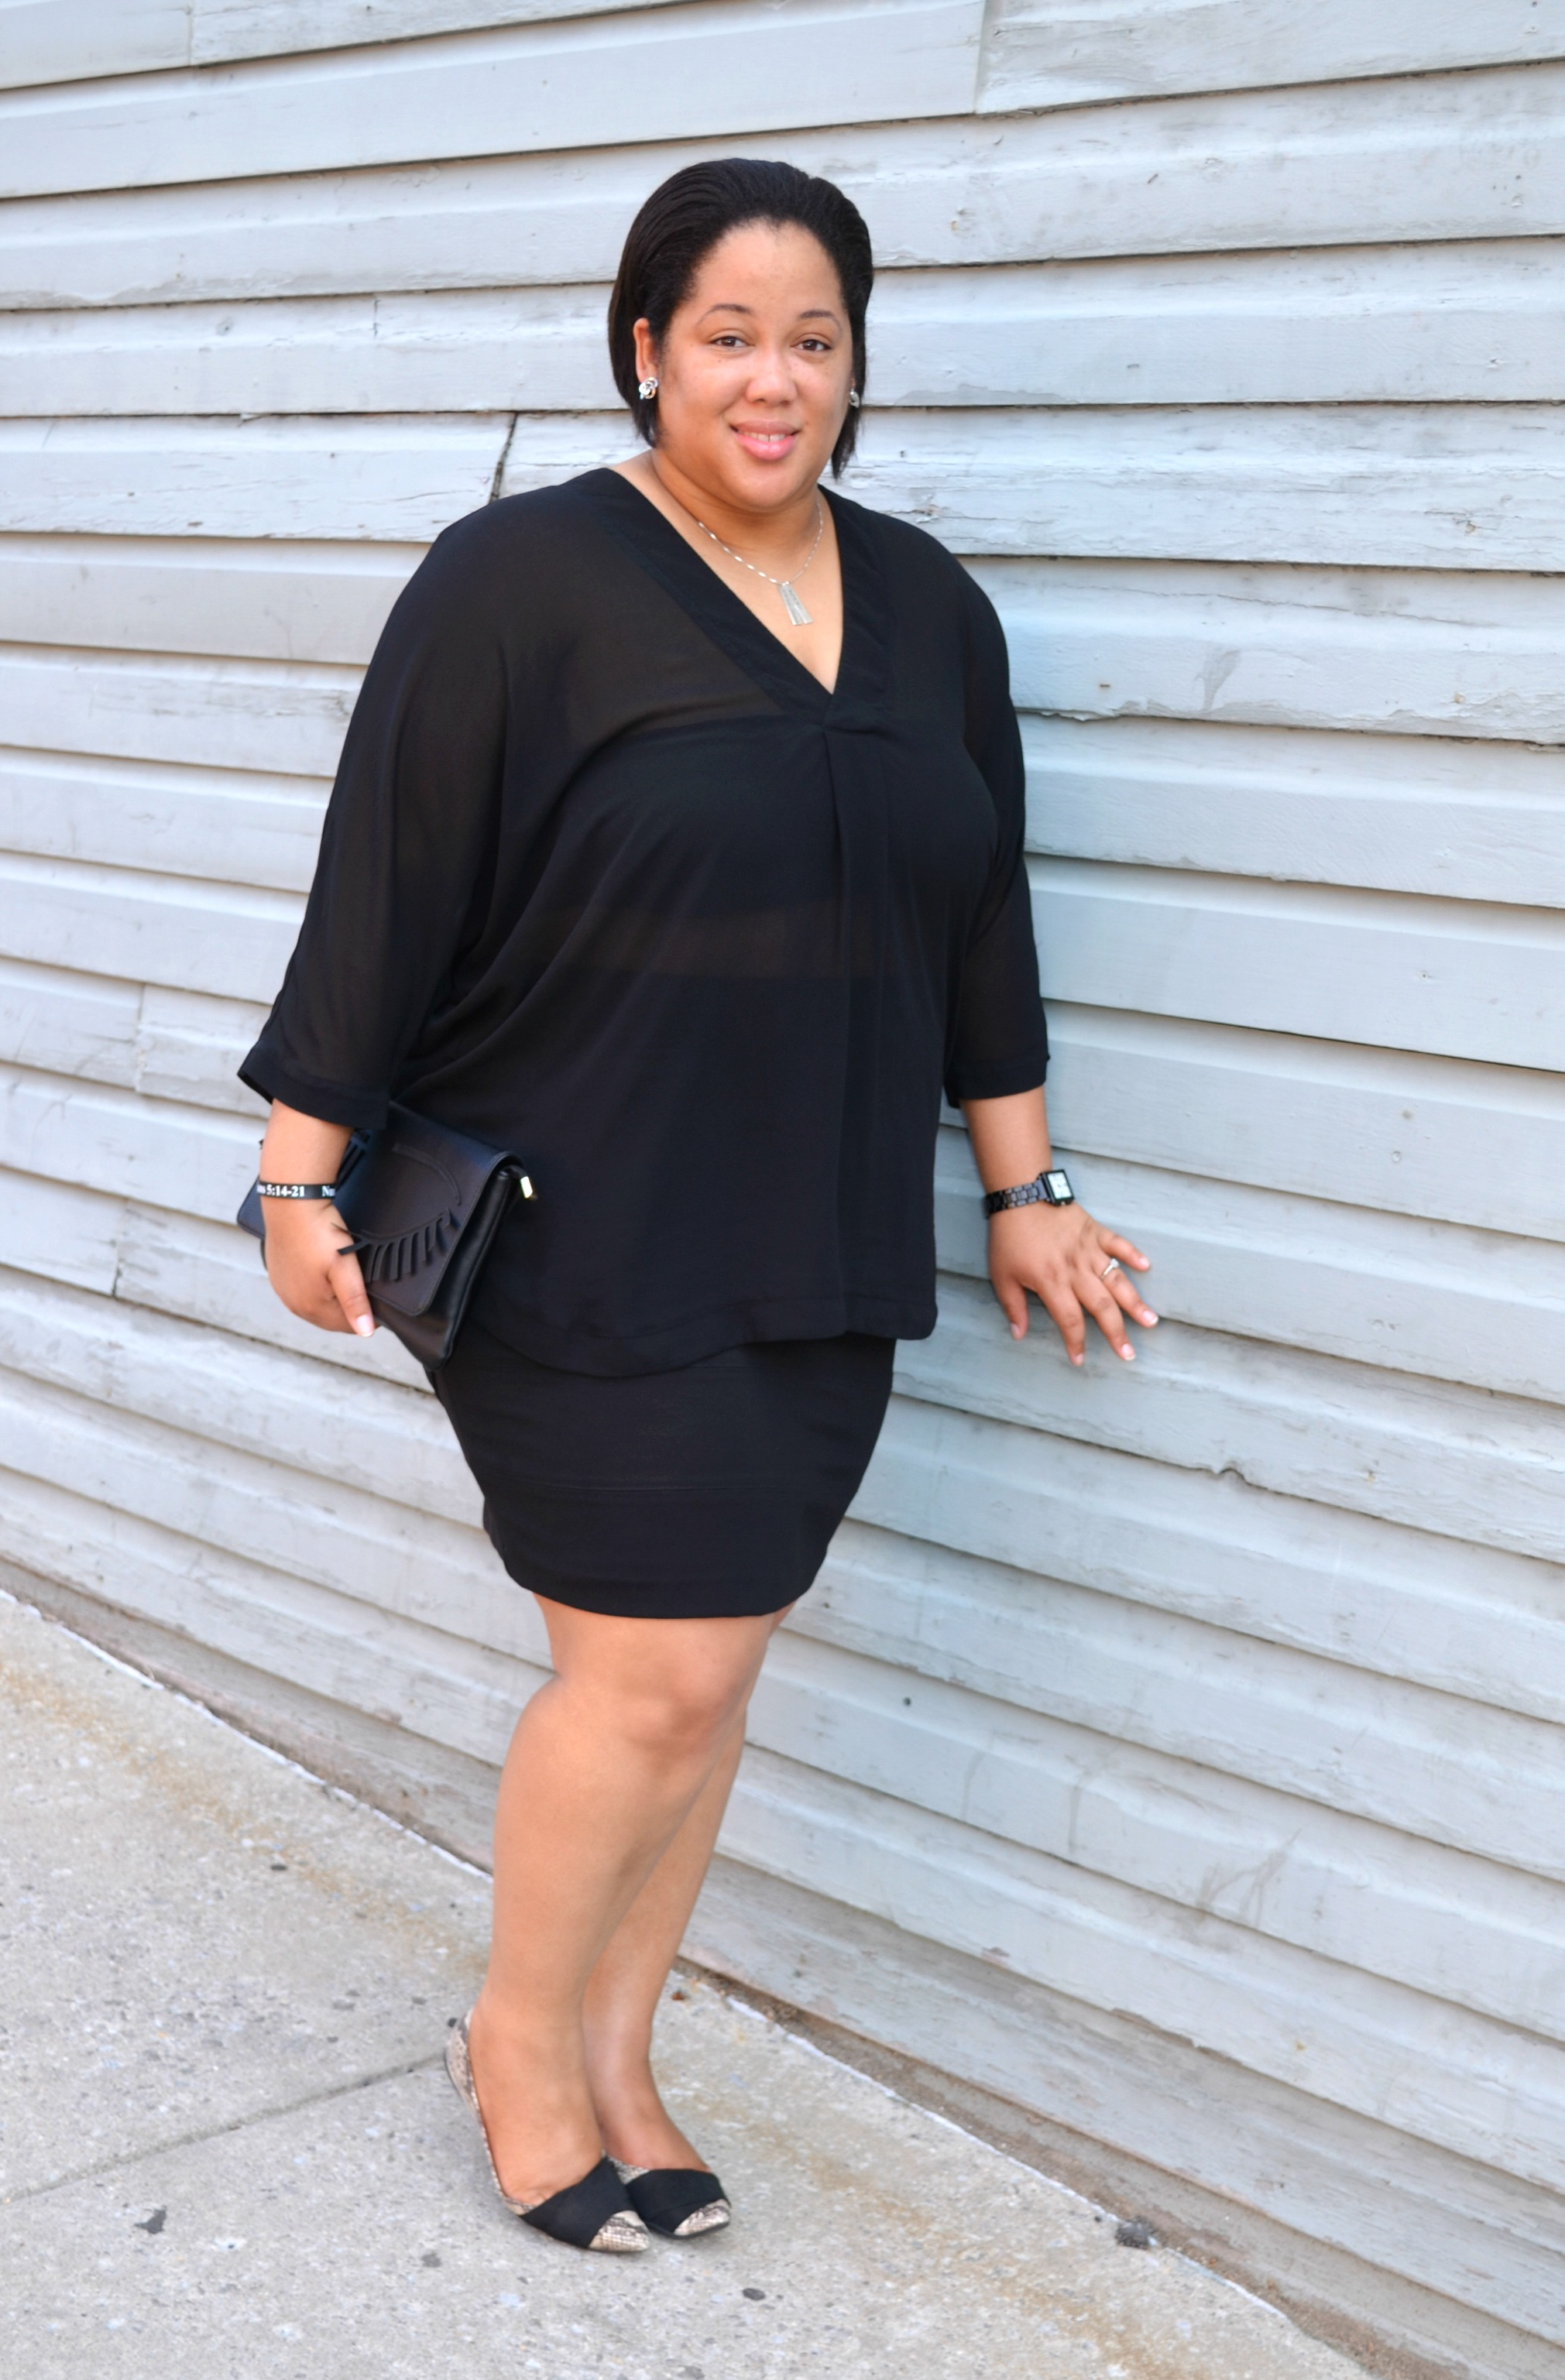 OOTD - Black Skirt and Black Blouse